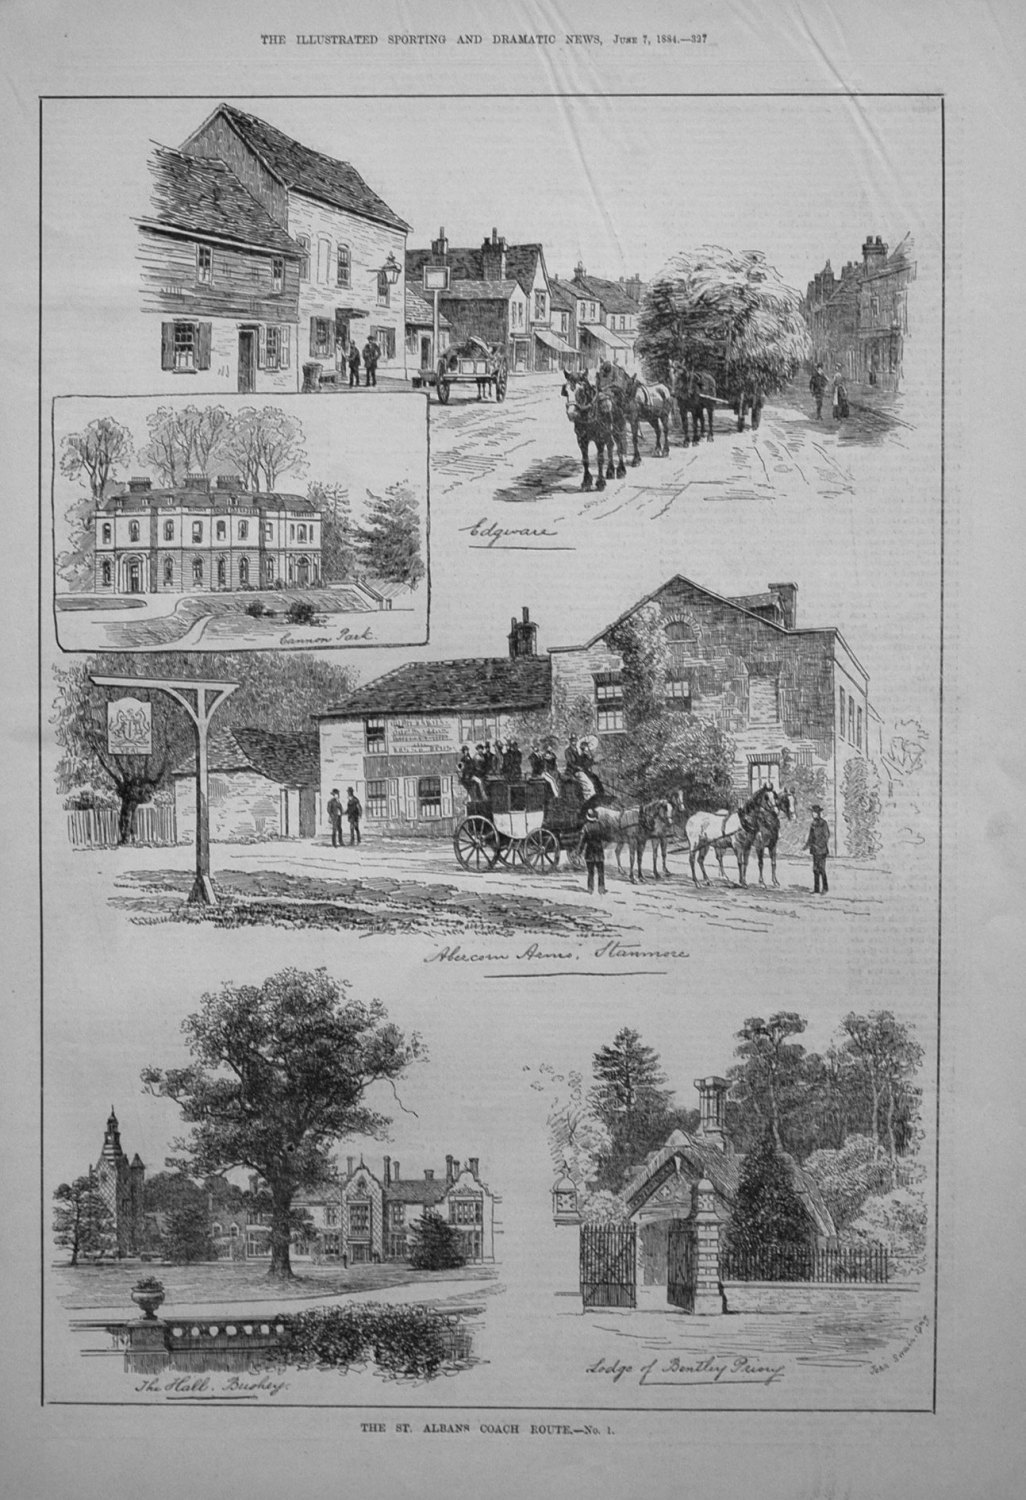 The St. Albans Coach Route. - No. 1. 1884